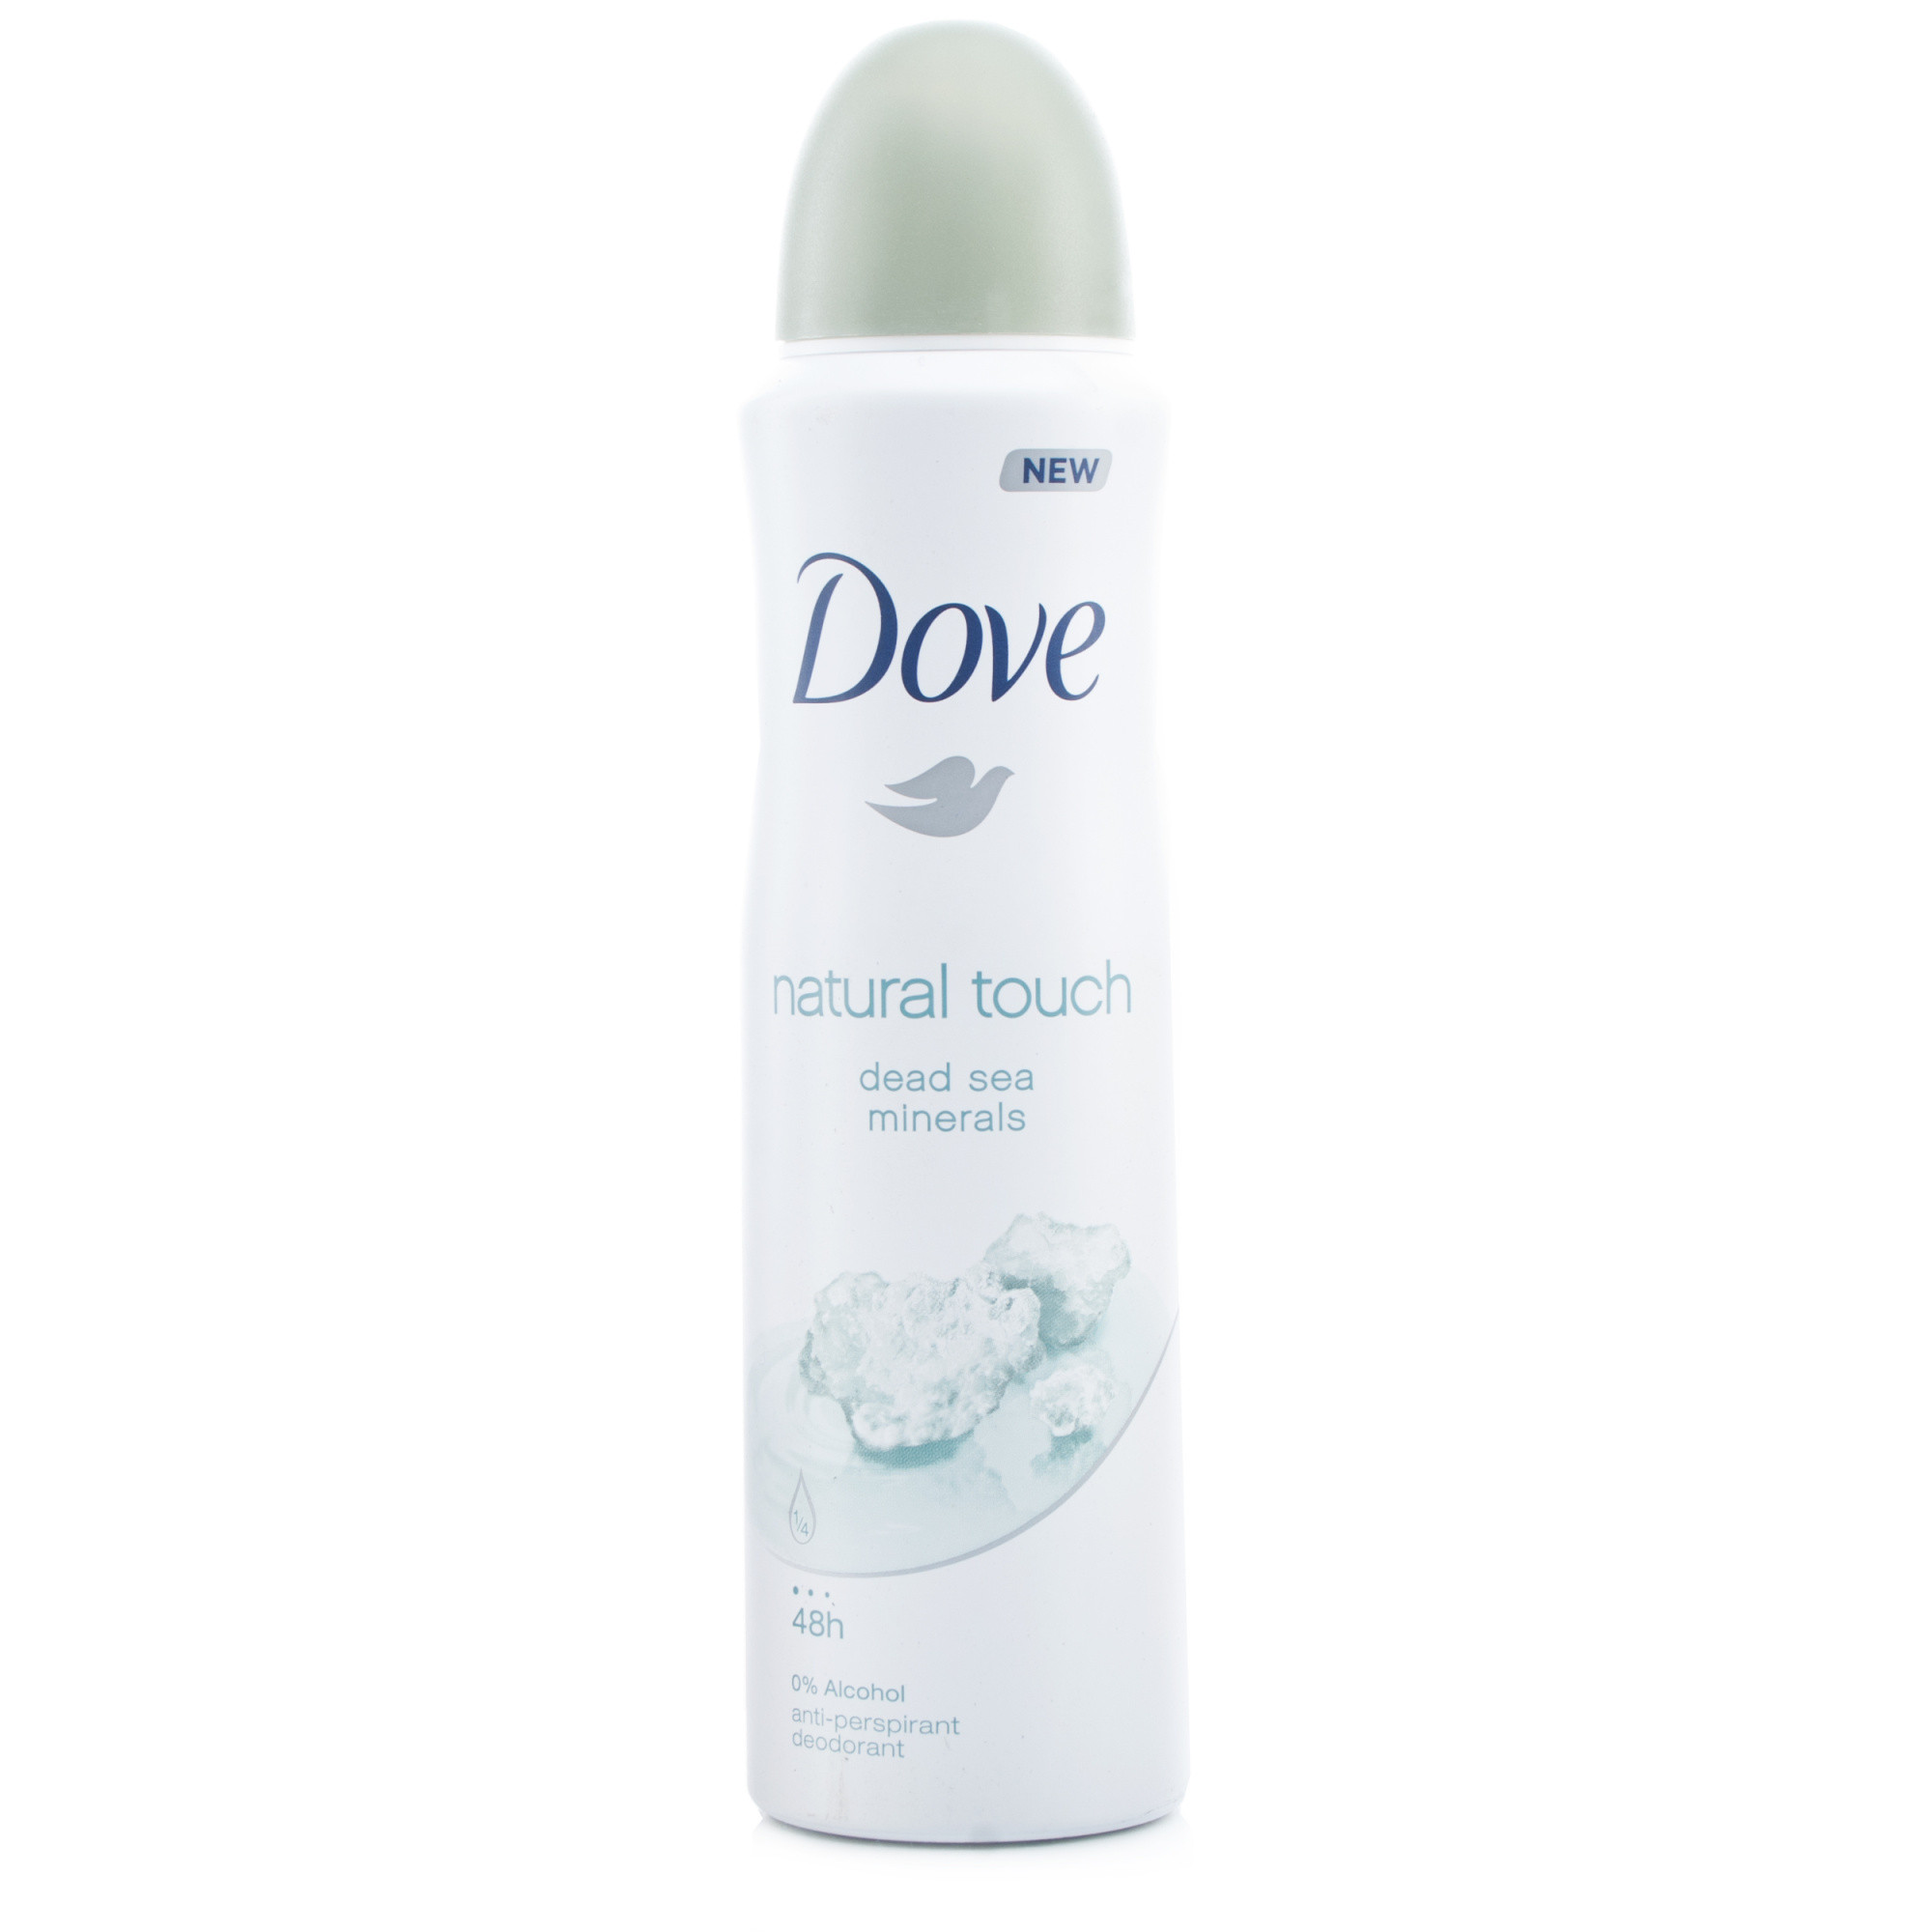 Dove Natural Touch Dead Sea Minerals Anti-Perspirant Deodorant